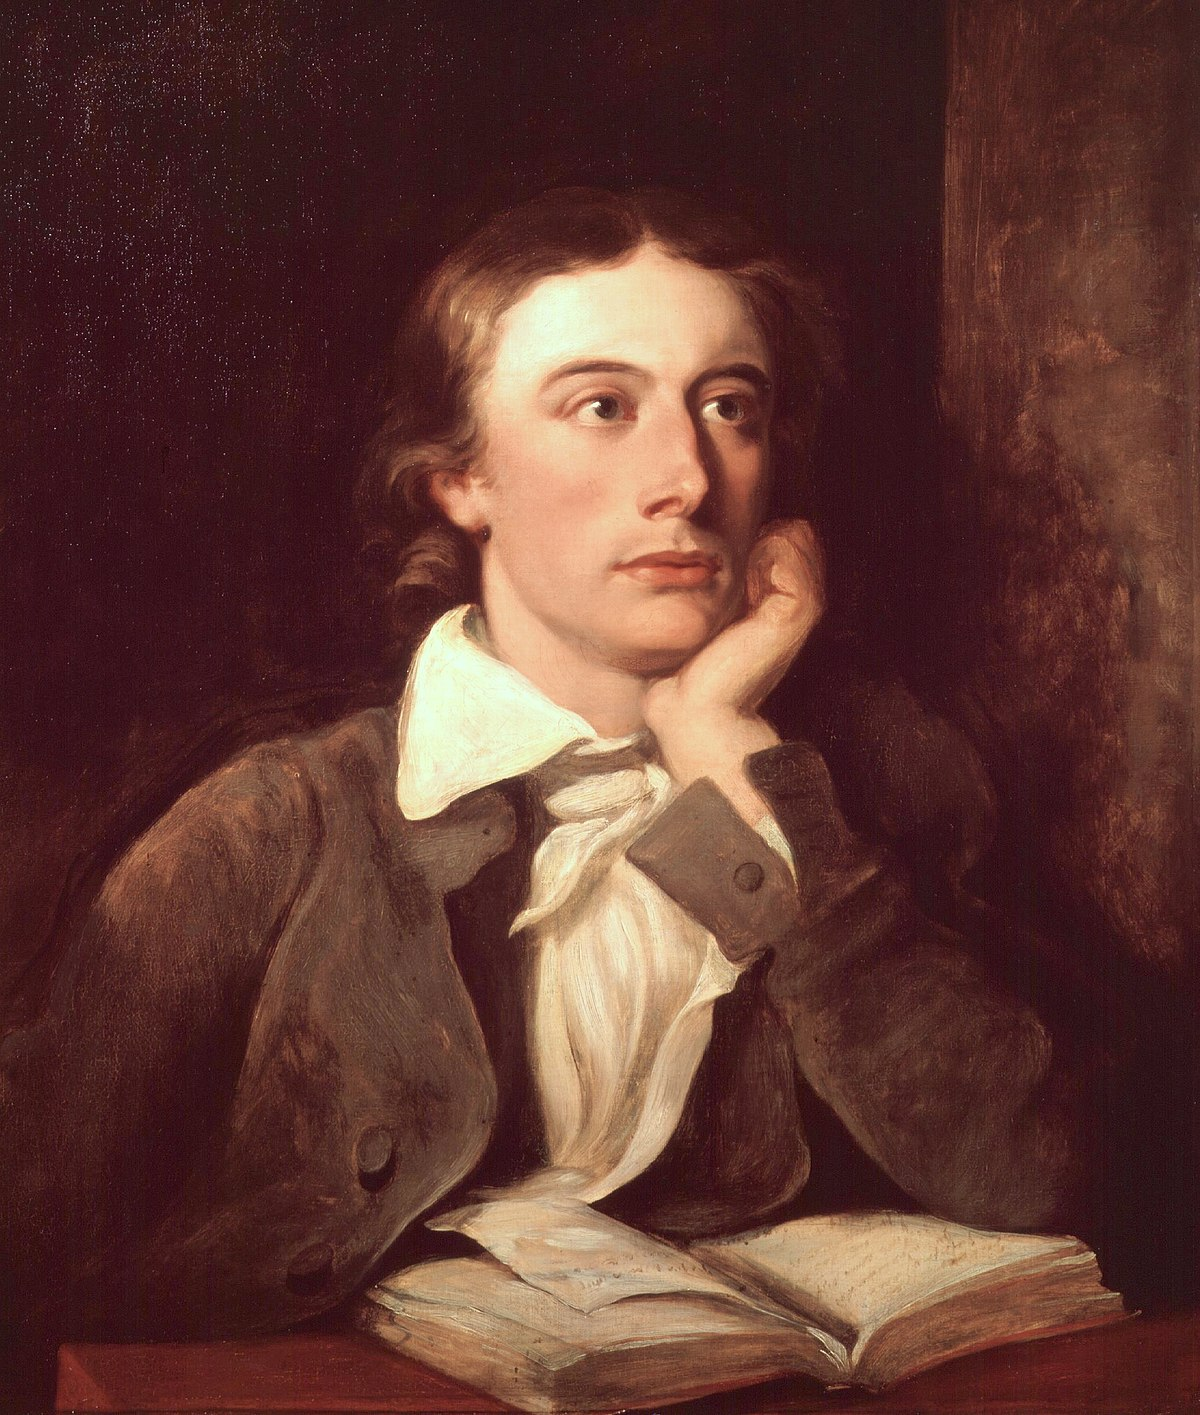 John Keats Wikipedia px John Keats By William Hilton John Keats